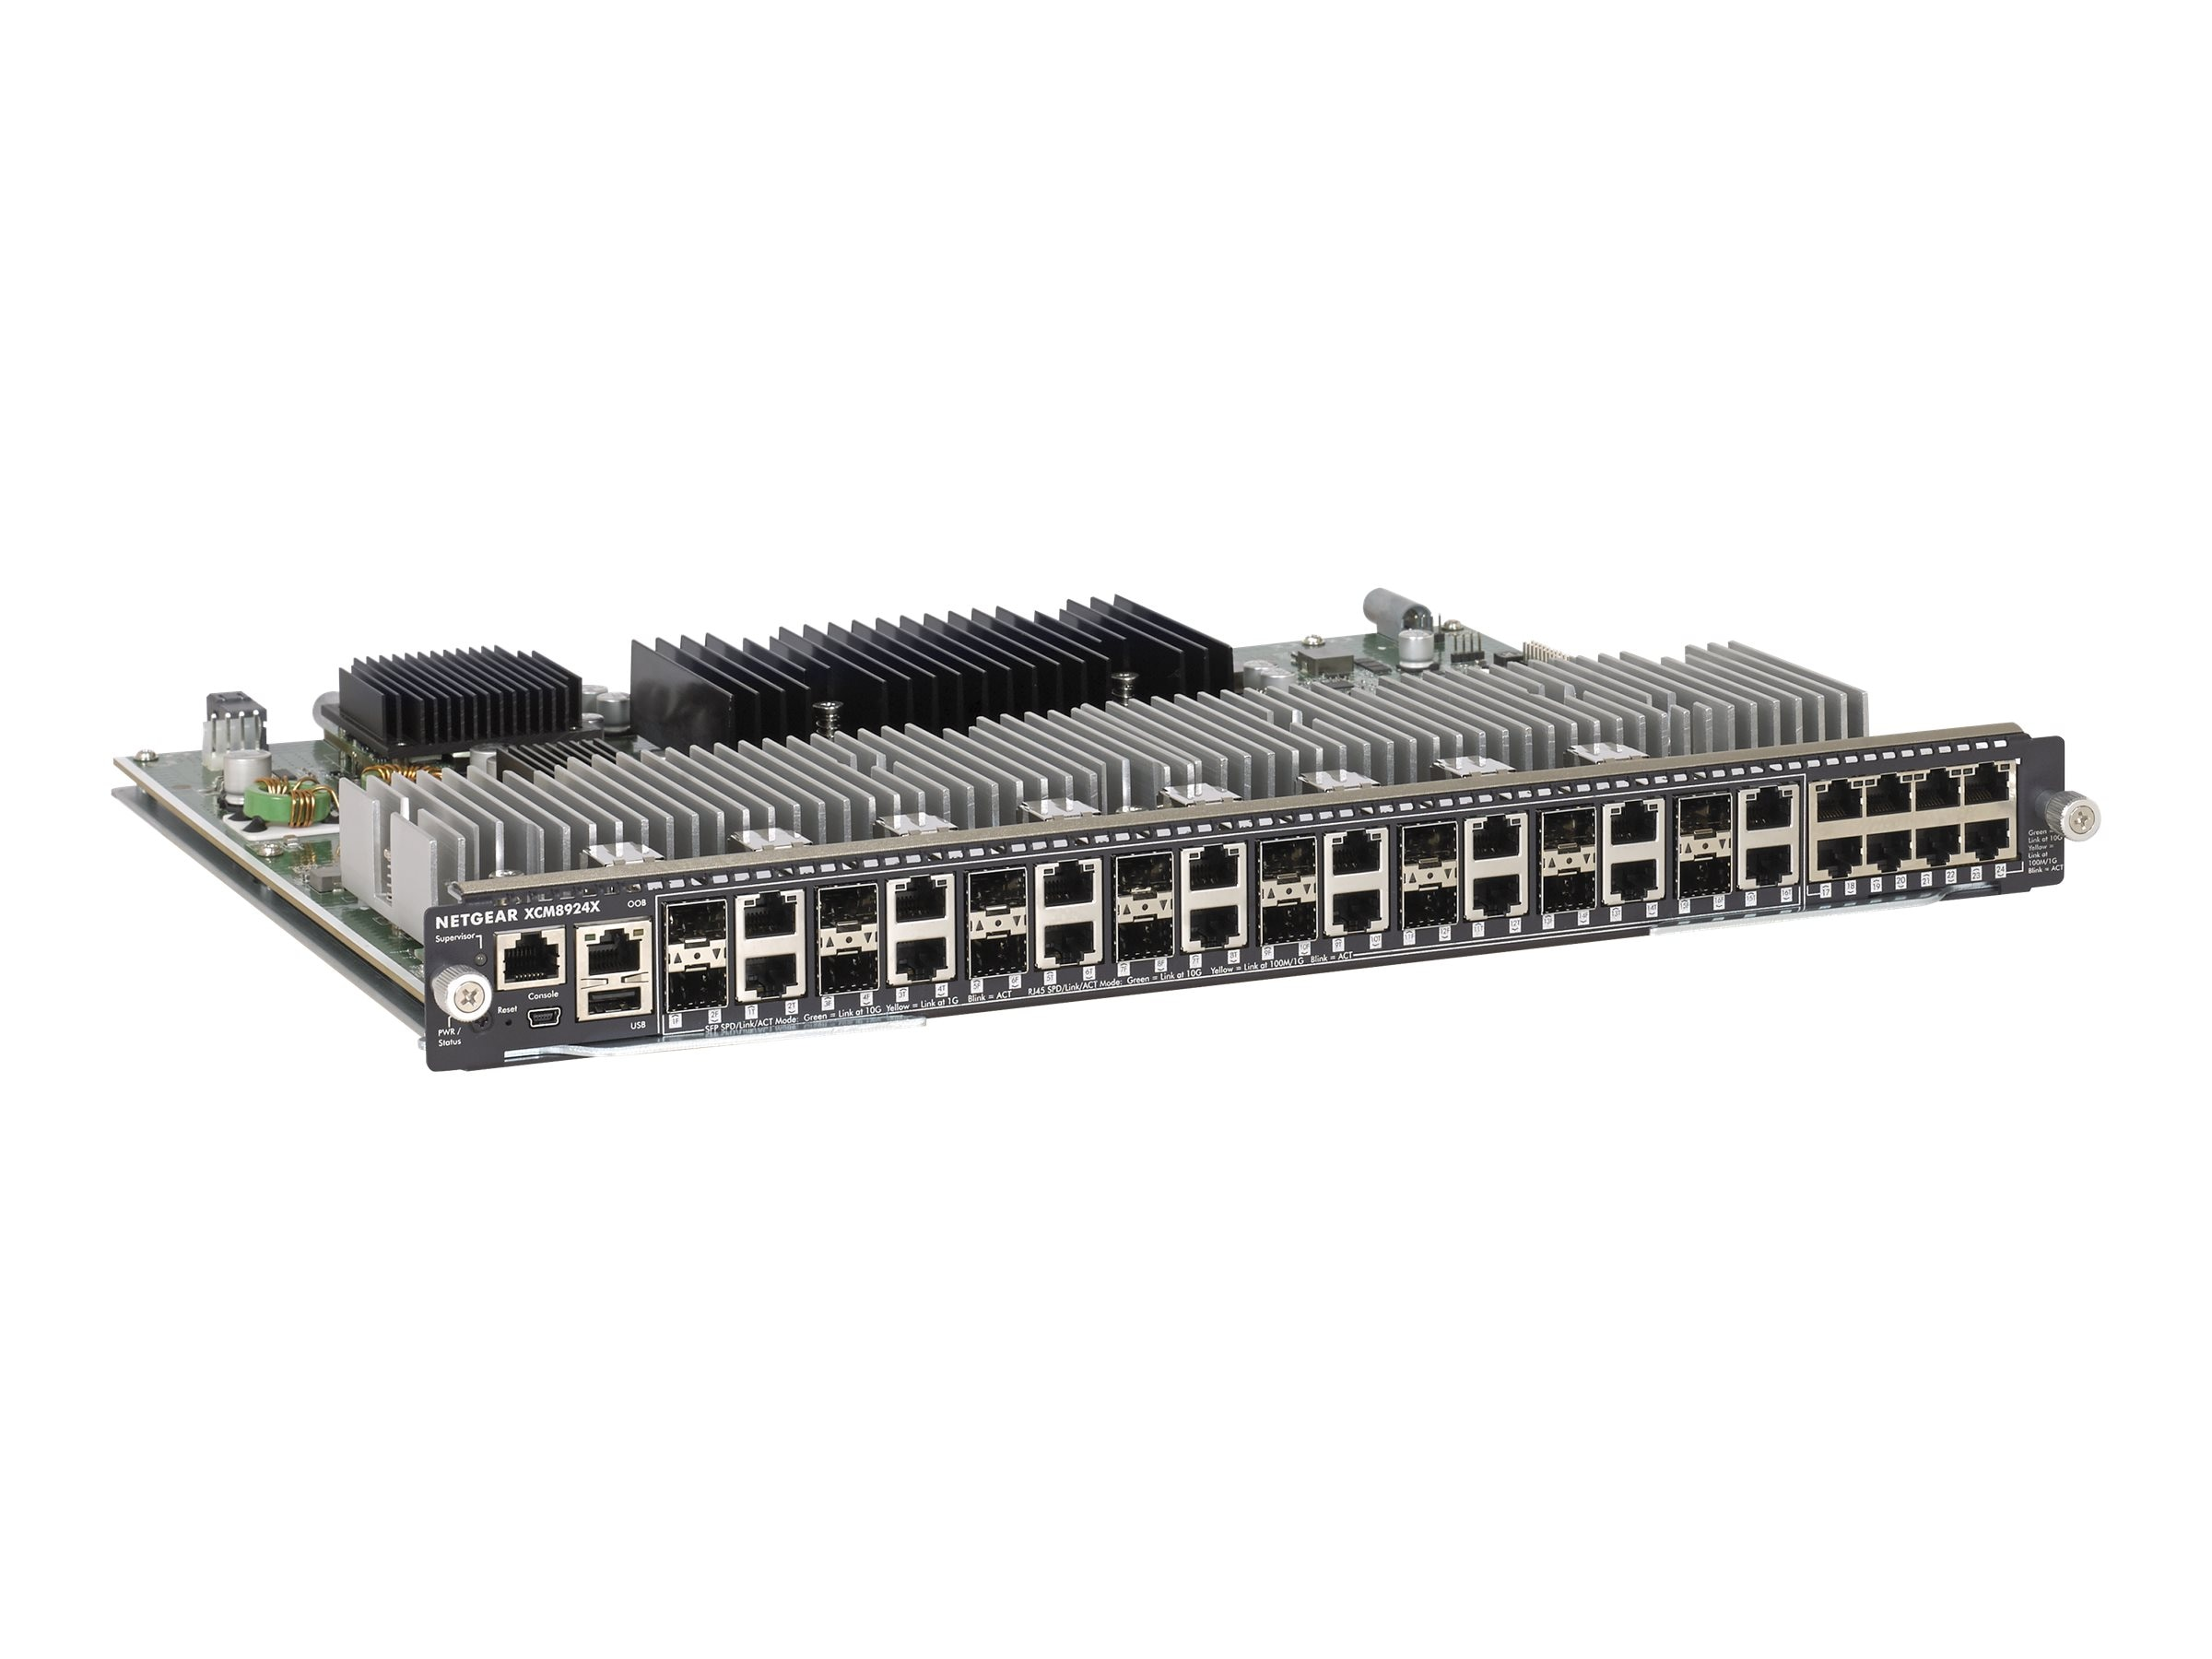 Netgear M6100 Chassis Series 24x10GBASE-T and 16 Shared SFP+ Blade, XCM8924X-10000S, 18366107, Network Switches